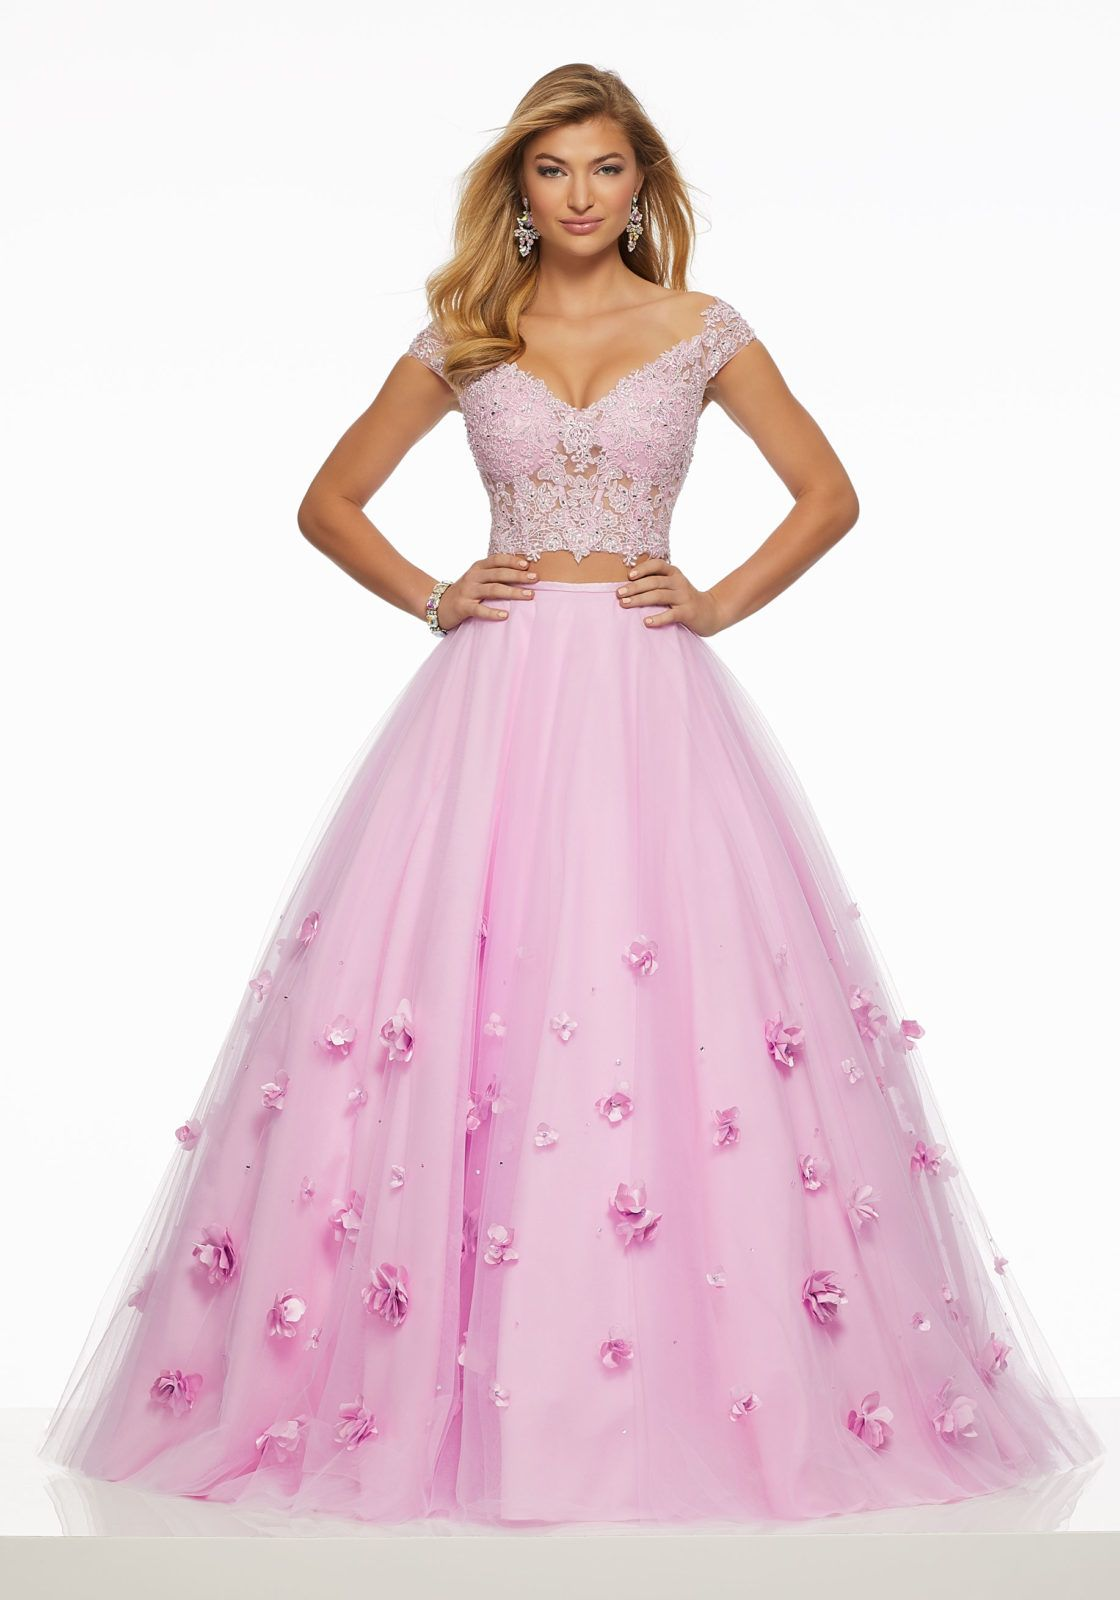 a7432b37bbd Two-Piece Beaded Lace on Net Top with Tulle Skirt with Three-Dimensional  Floral Appliqués  quinceanera  quinceaneradress  vestidosdequince